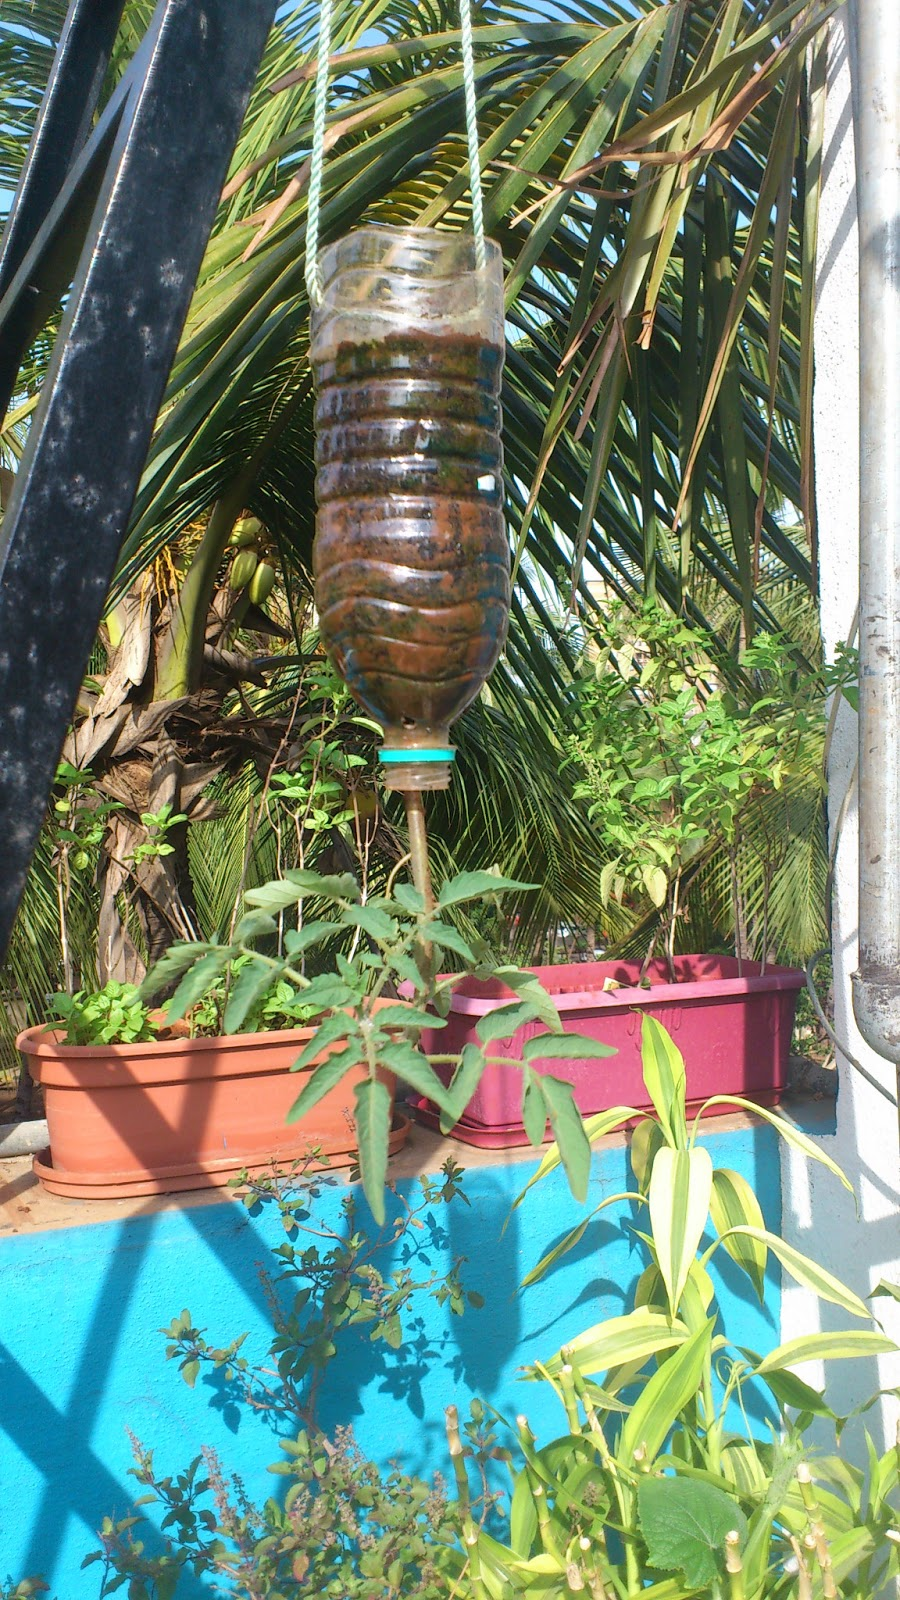 How to grow an upside down tomato plant crazy gardner - Can a plant grow upside down ...